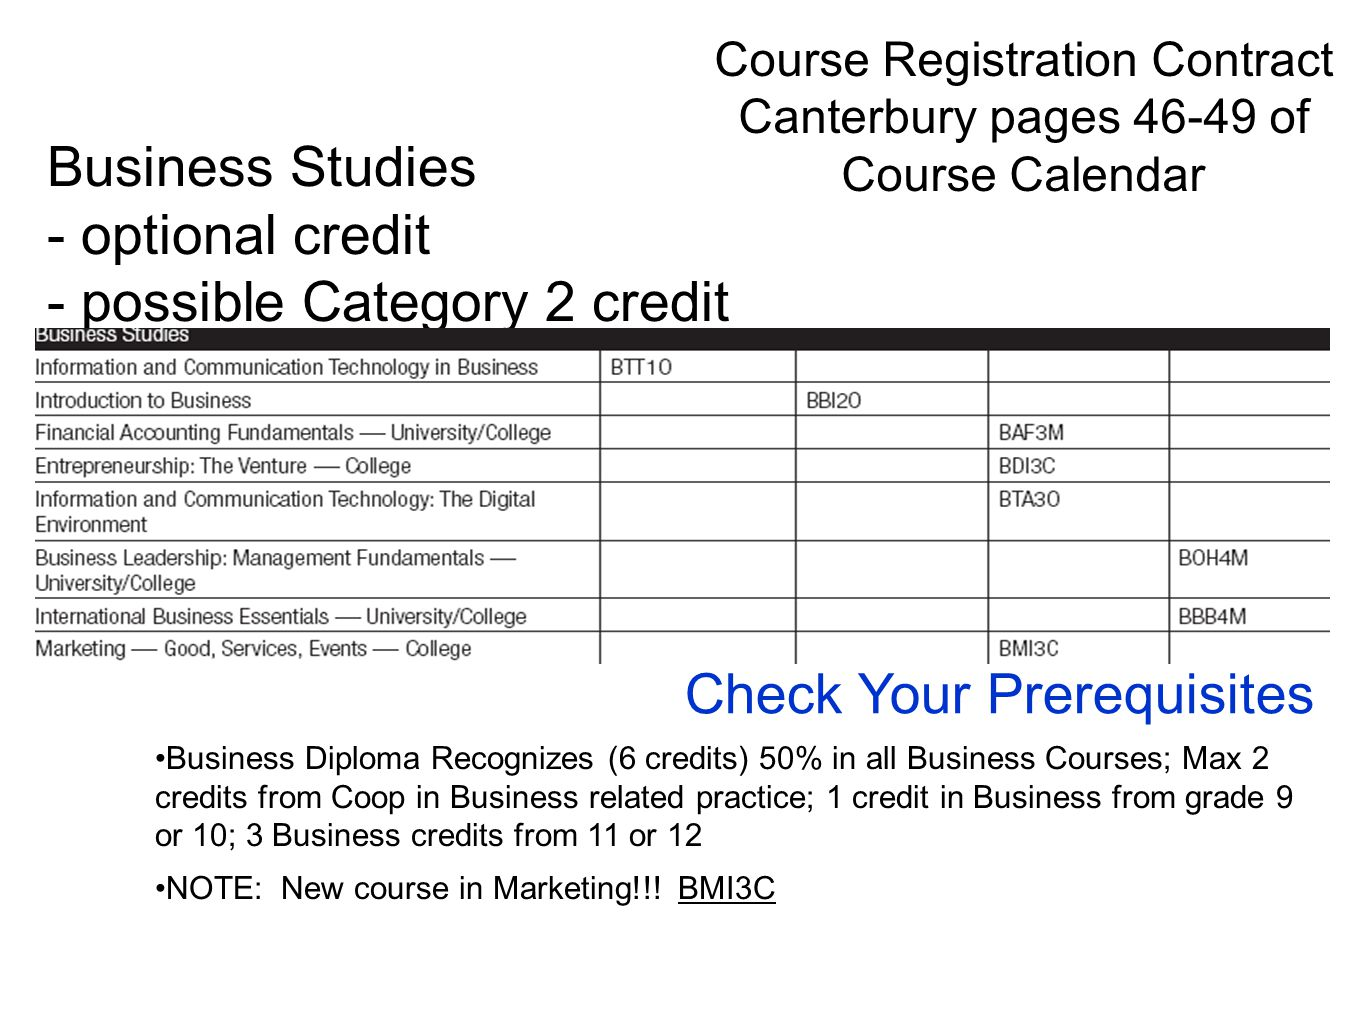 Business Diploma Recognizes (6 credits) 50% in all Business Courses; Max 2 credits from Coop in Business related practice; 1 credit in Business from g